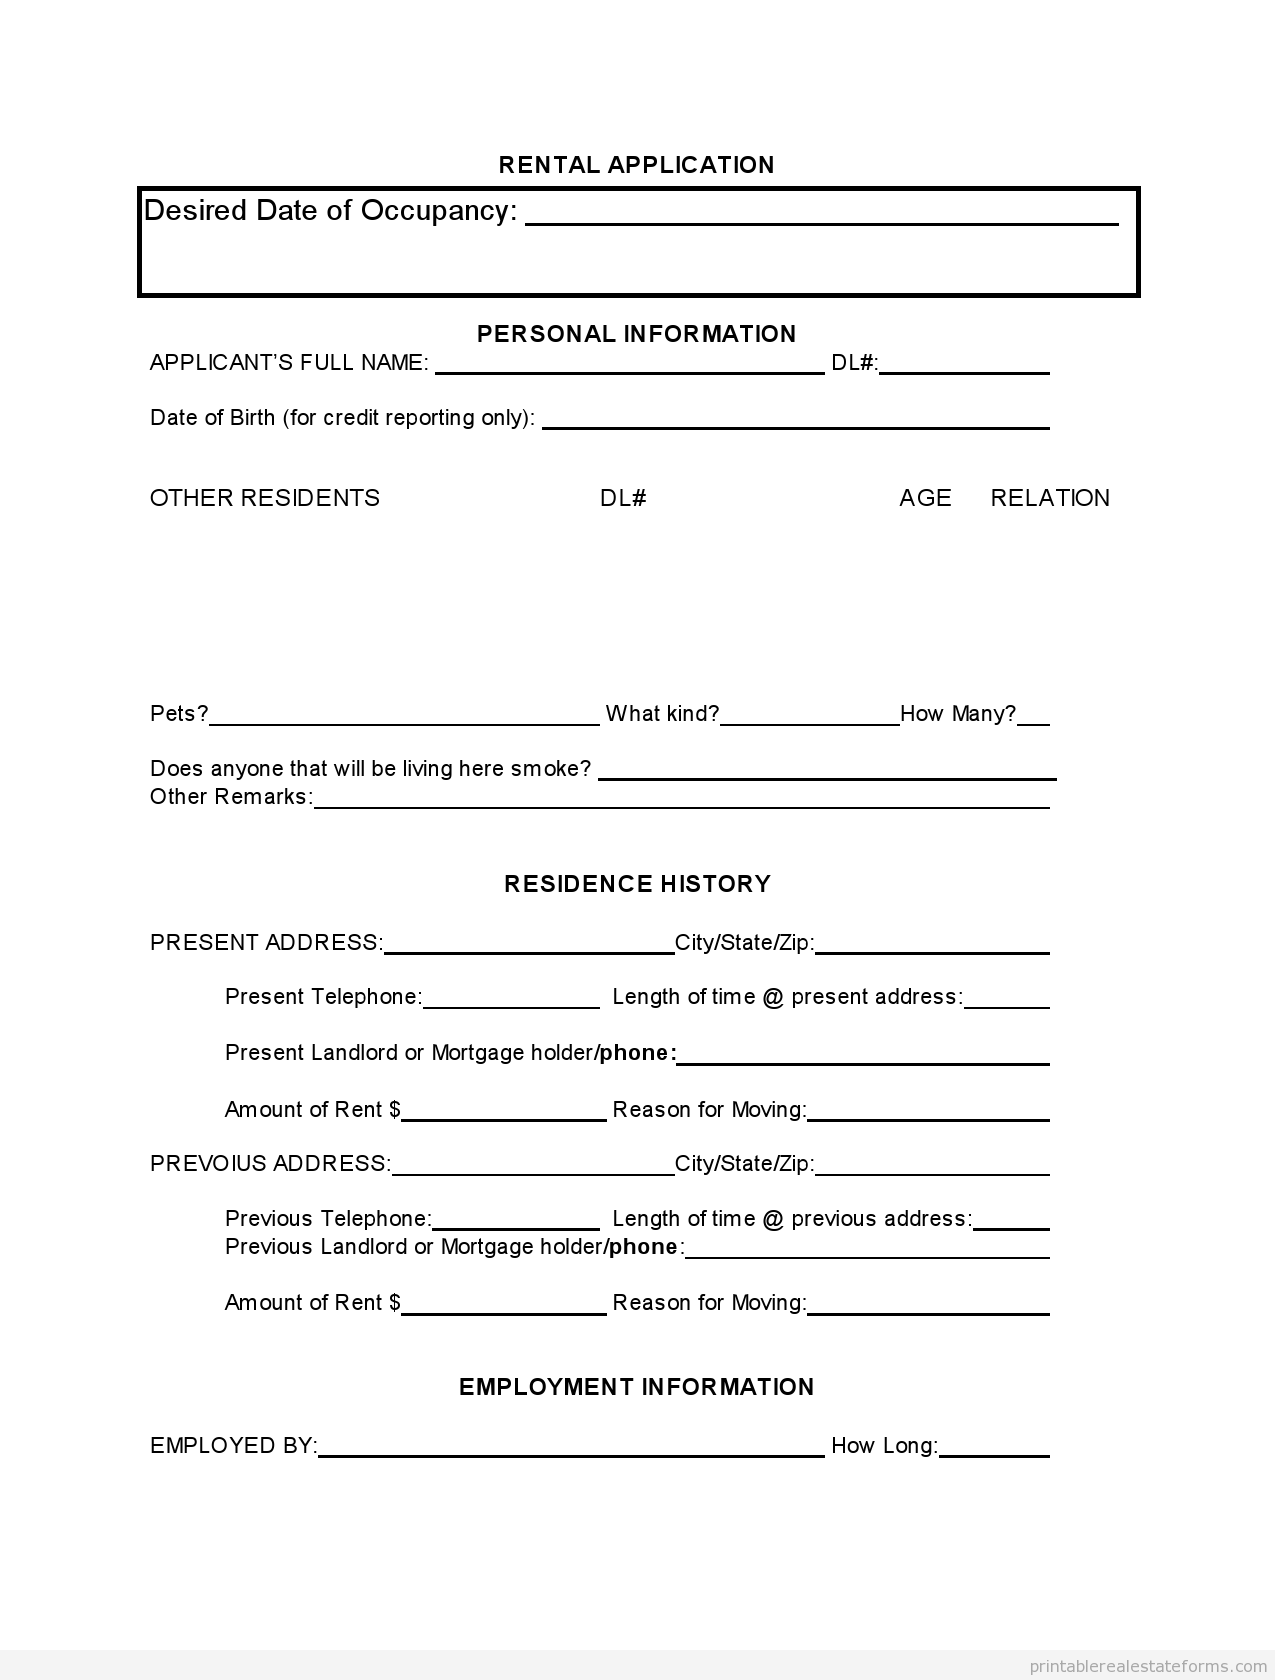 Sample Printable Tenant Rental Application Form  Printable Real